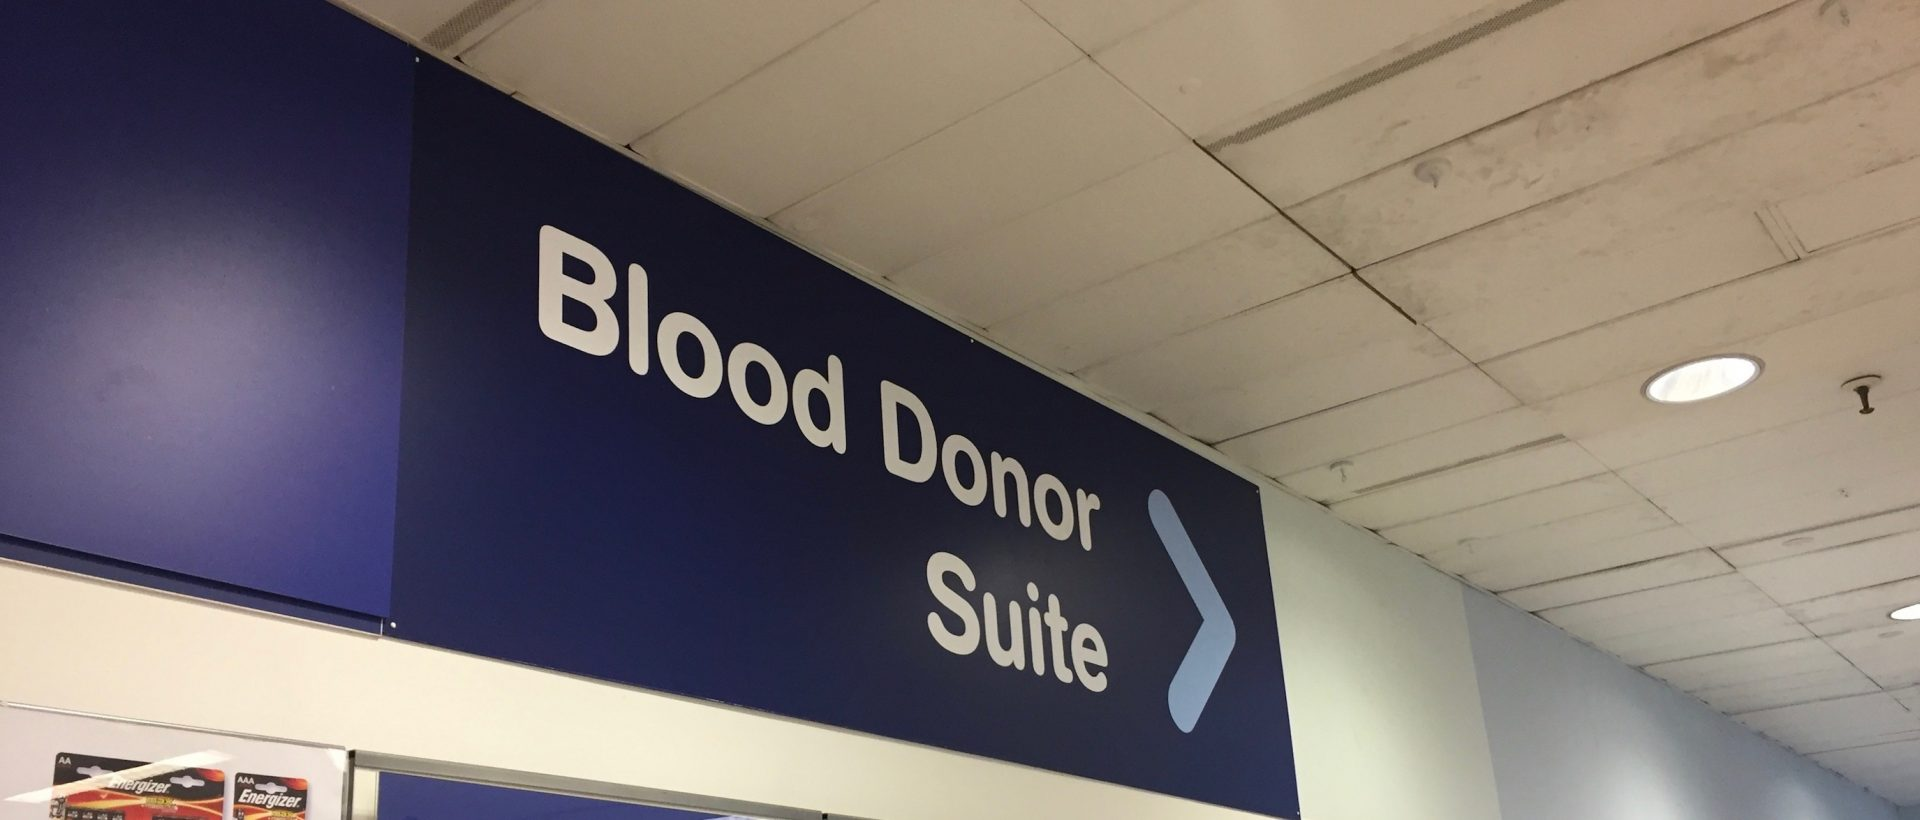 Photo of sign pointing to blood donor suite at The Dolphin Centre